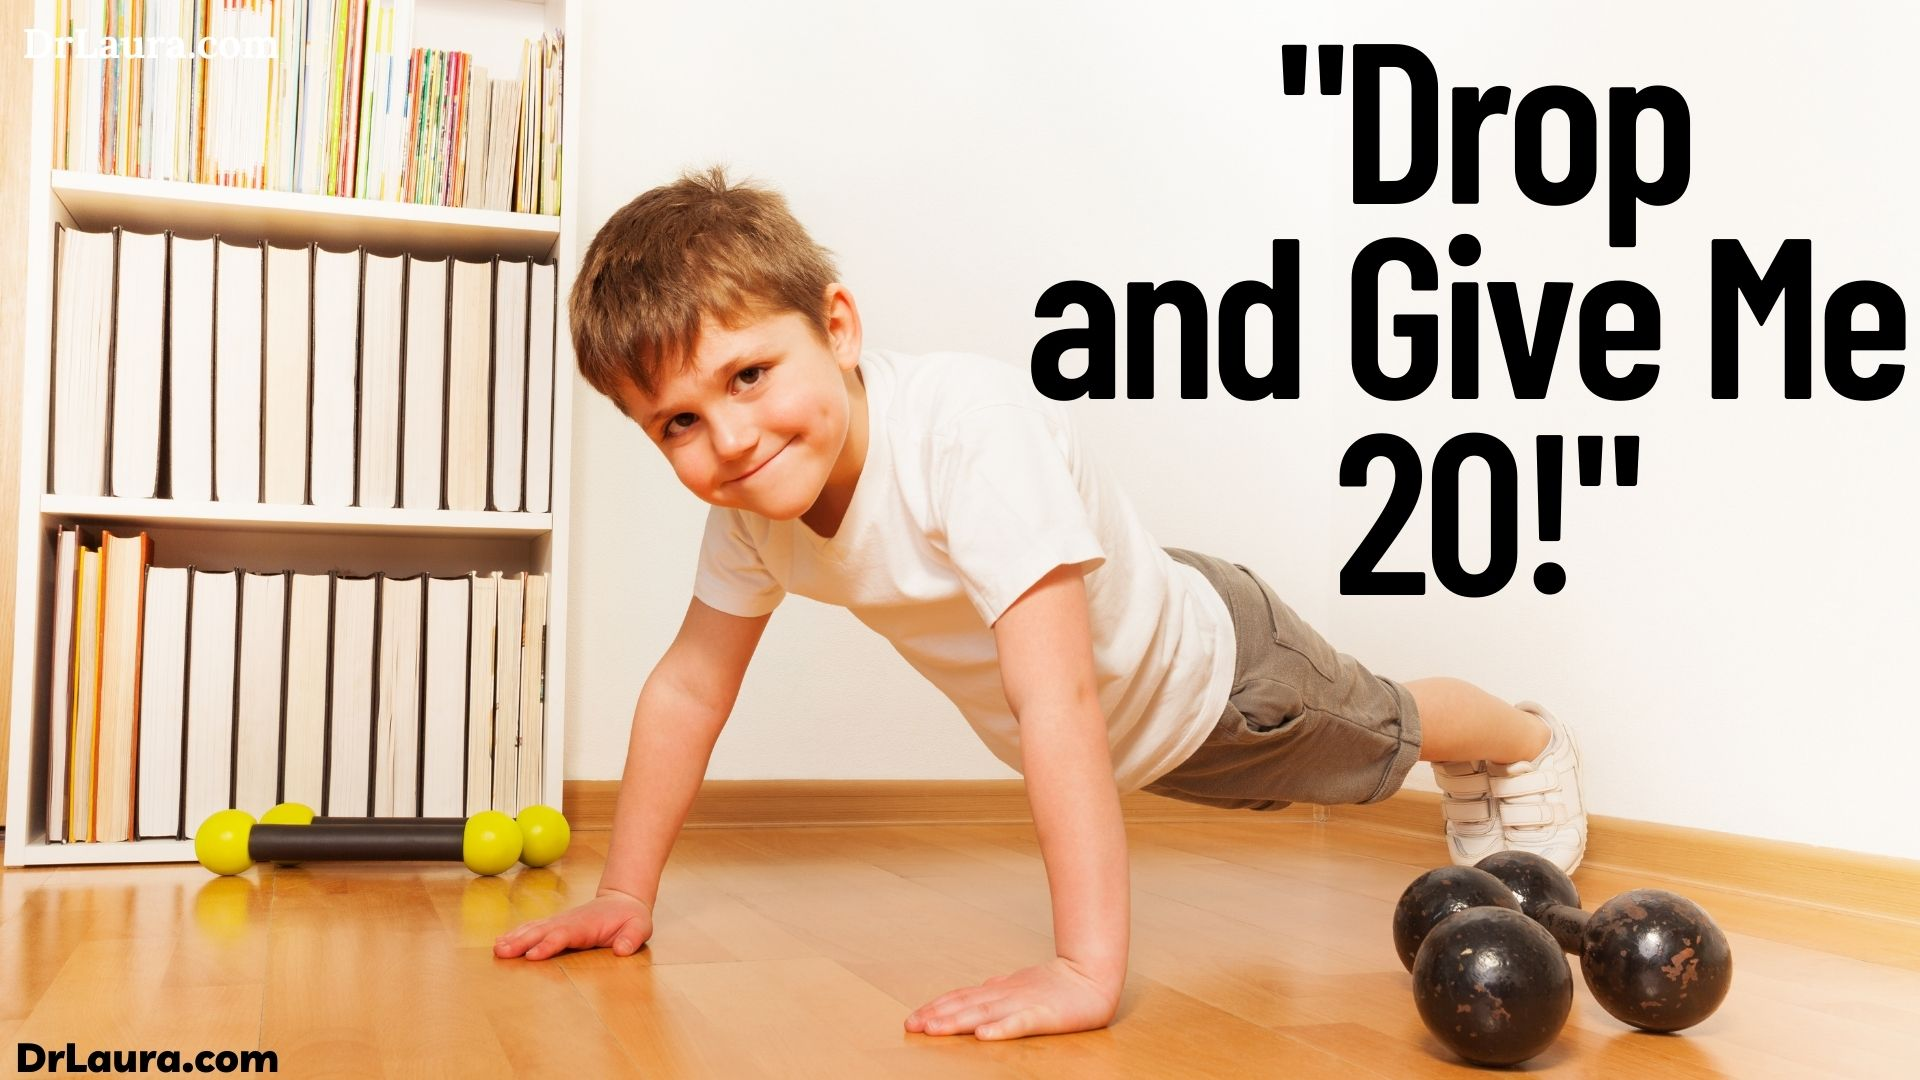 Email of the Day: Physical Exertion Diffused My Son's Anger